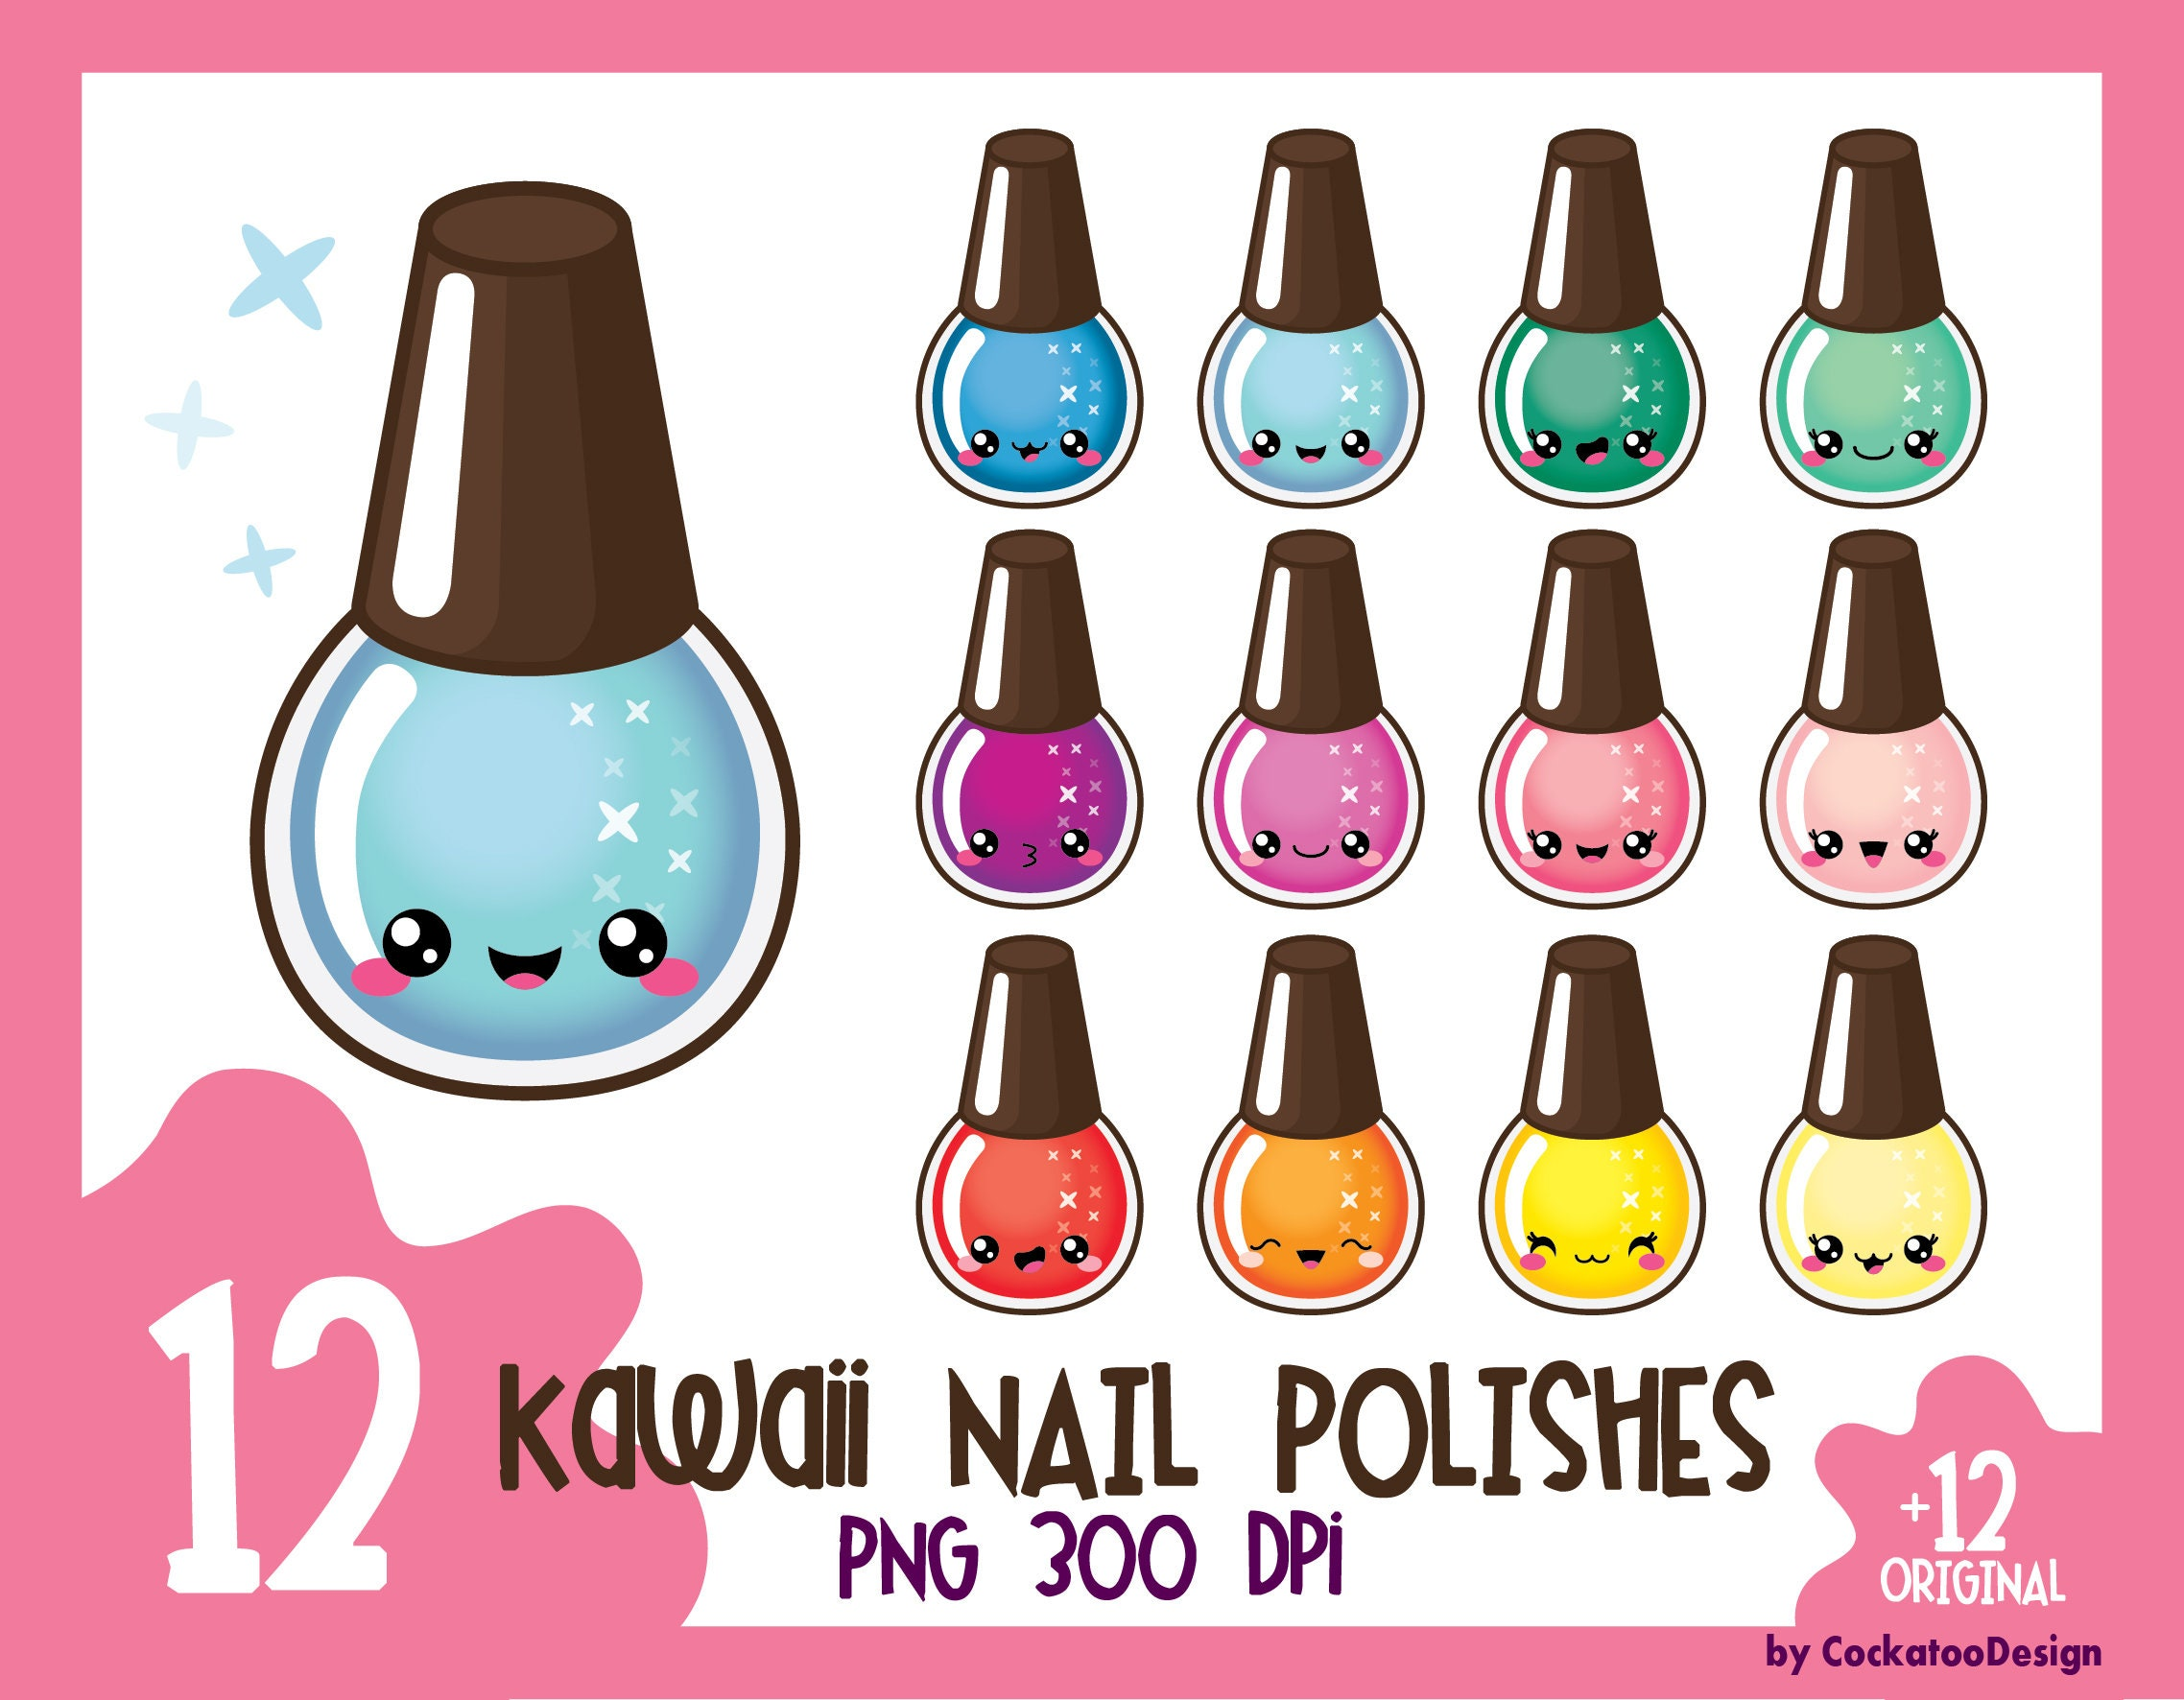 Kawaii nail polish clipart nail polish clip art manicure ...